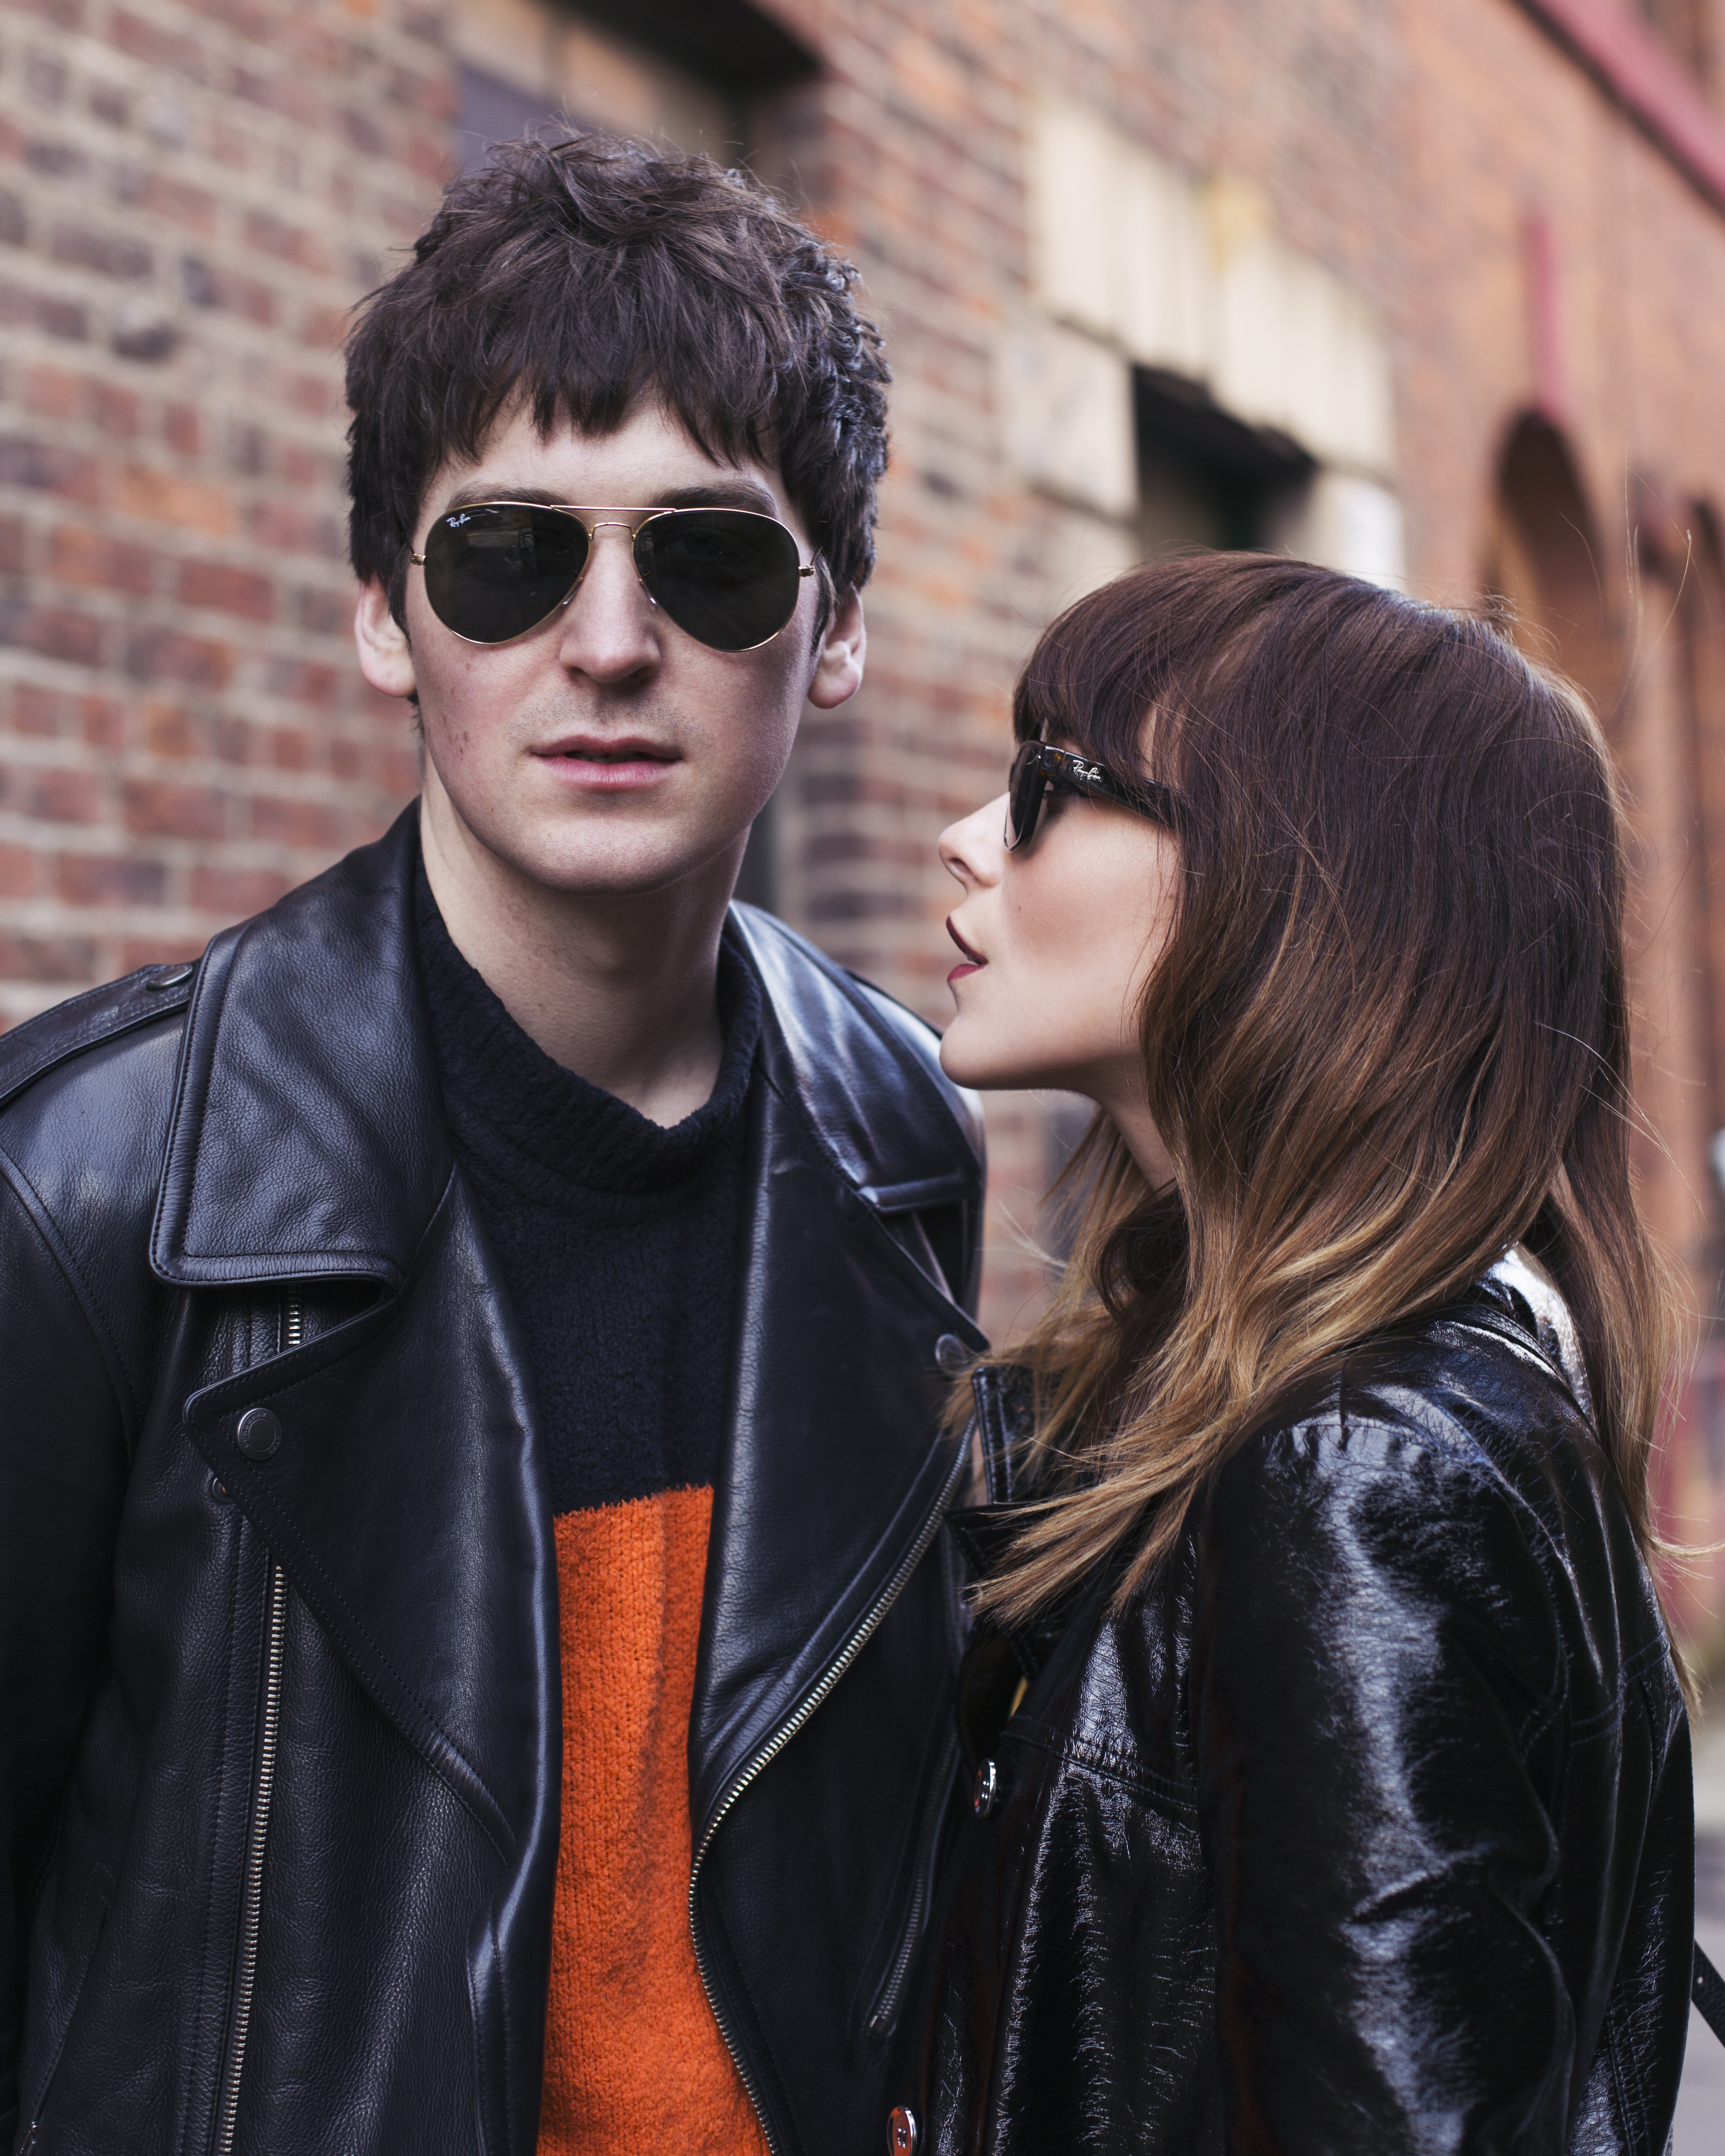 MEGAN ELLABY AND GEORGE CRAIG WEAR CLASSIC RAY BAN STYLE SUNGLASSES FOR SS17